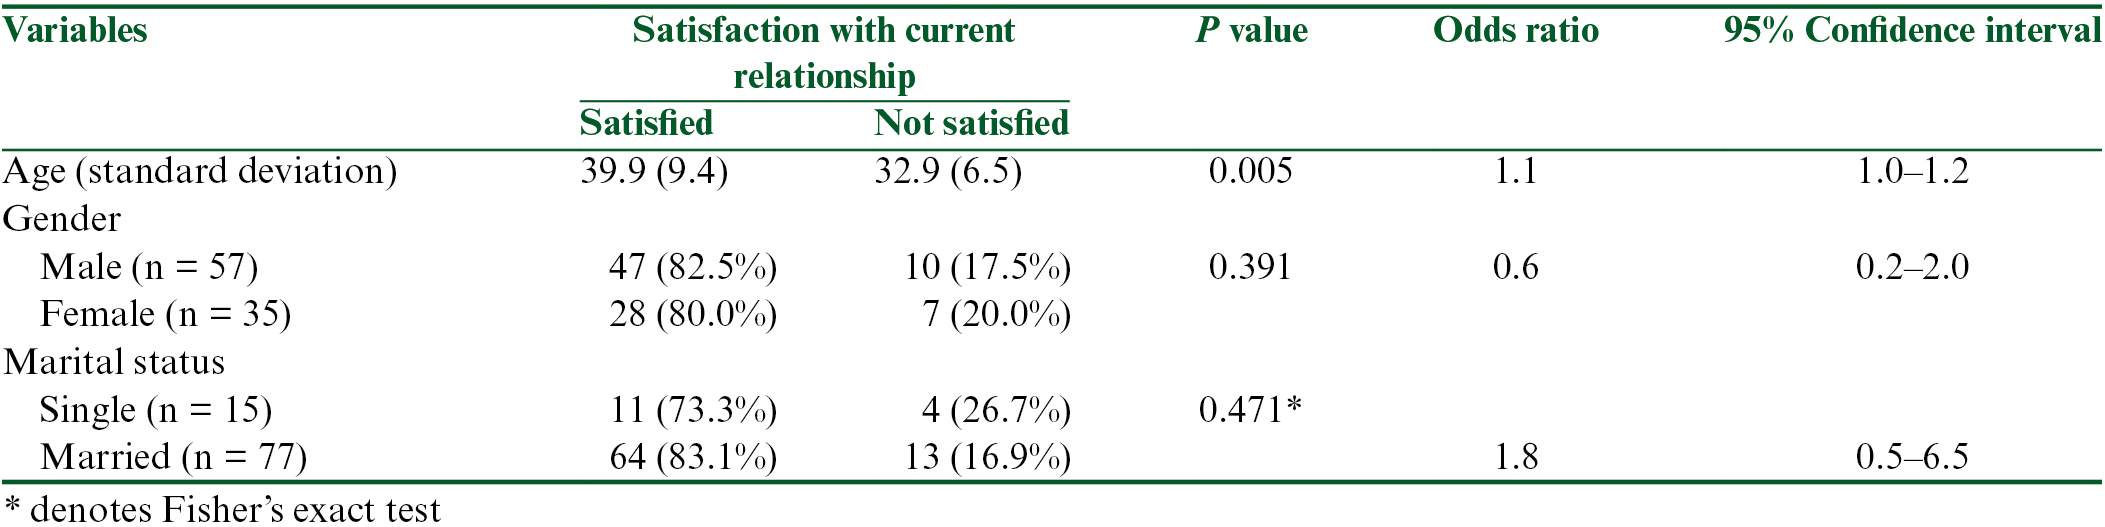 Table 3: The relationship between sociodemographic factors and satisfaction with current relationship